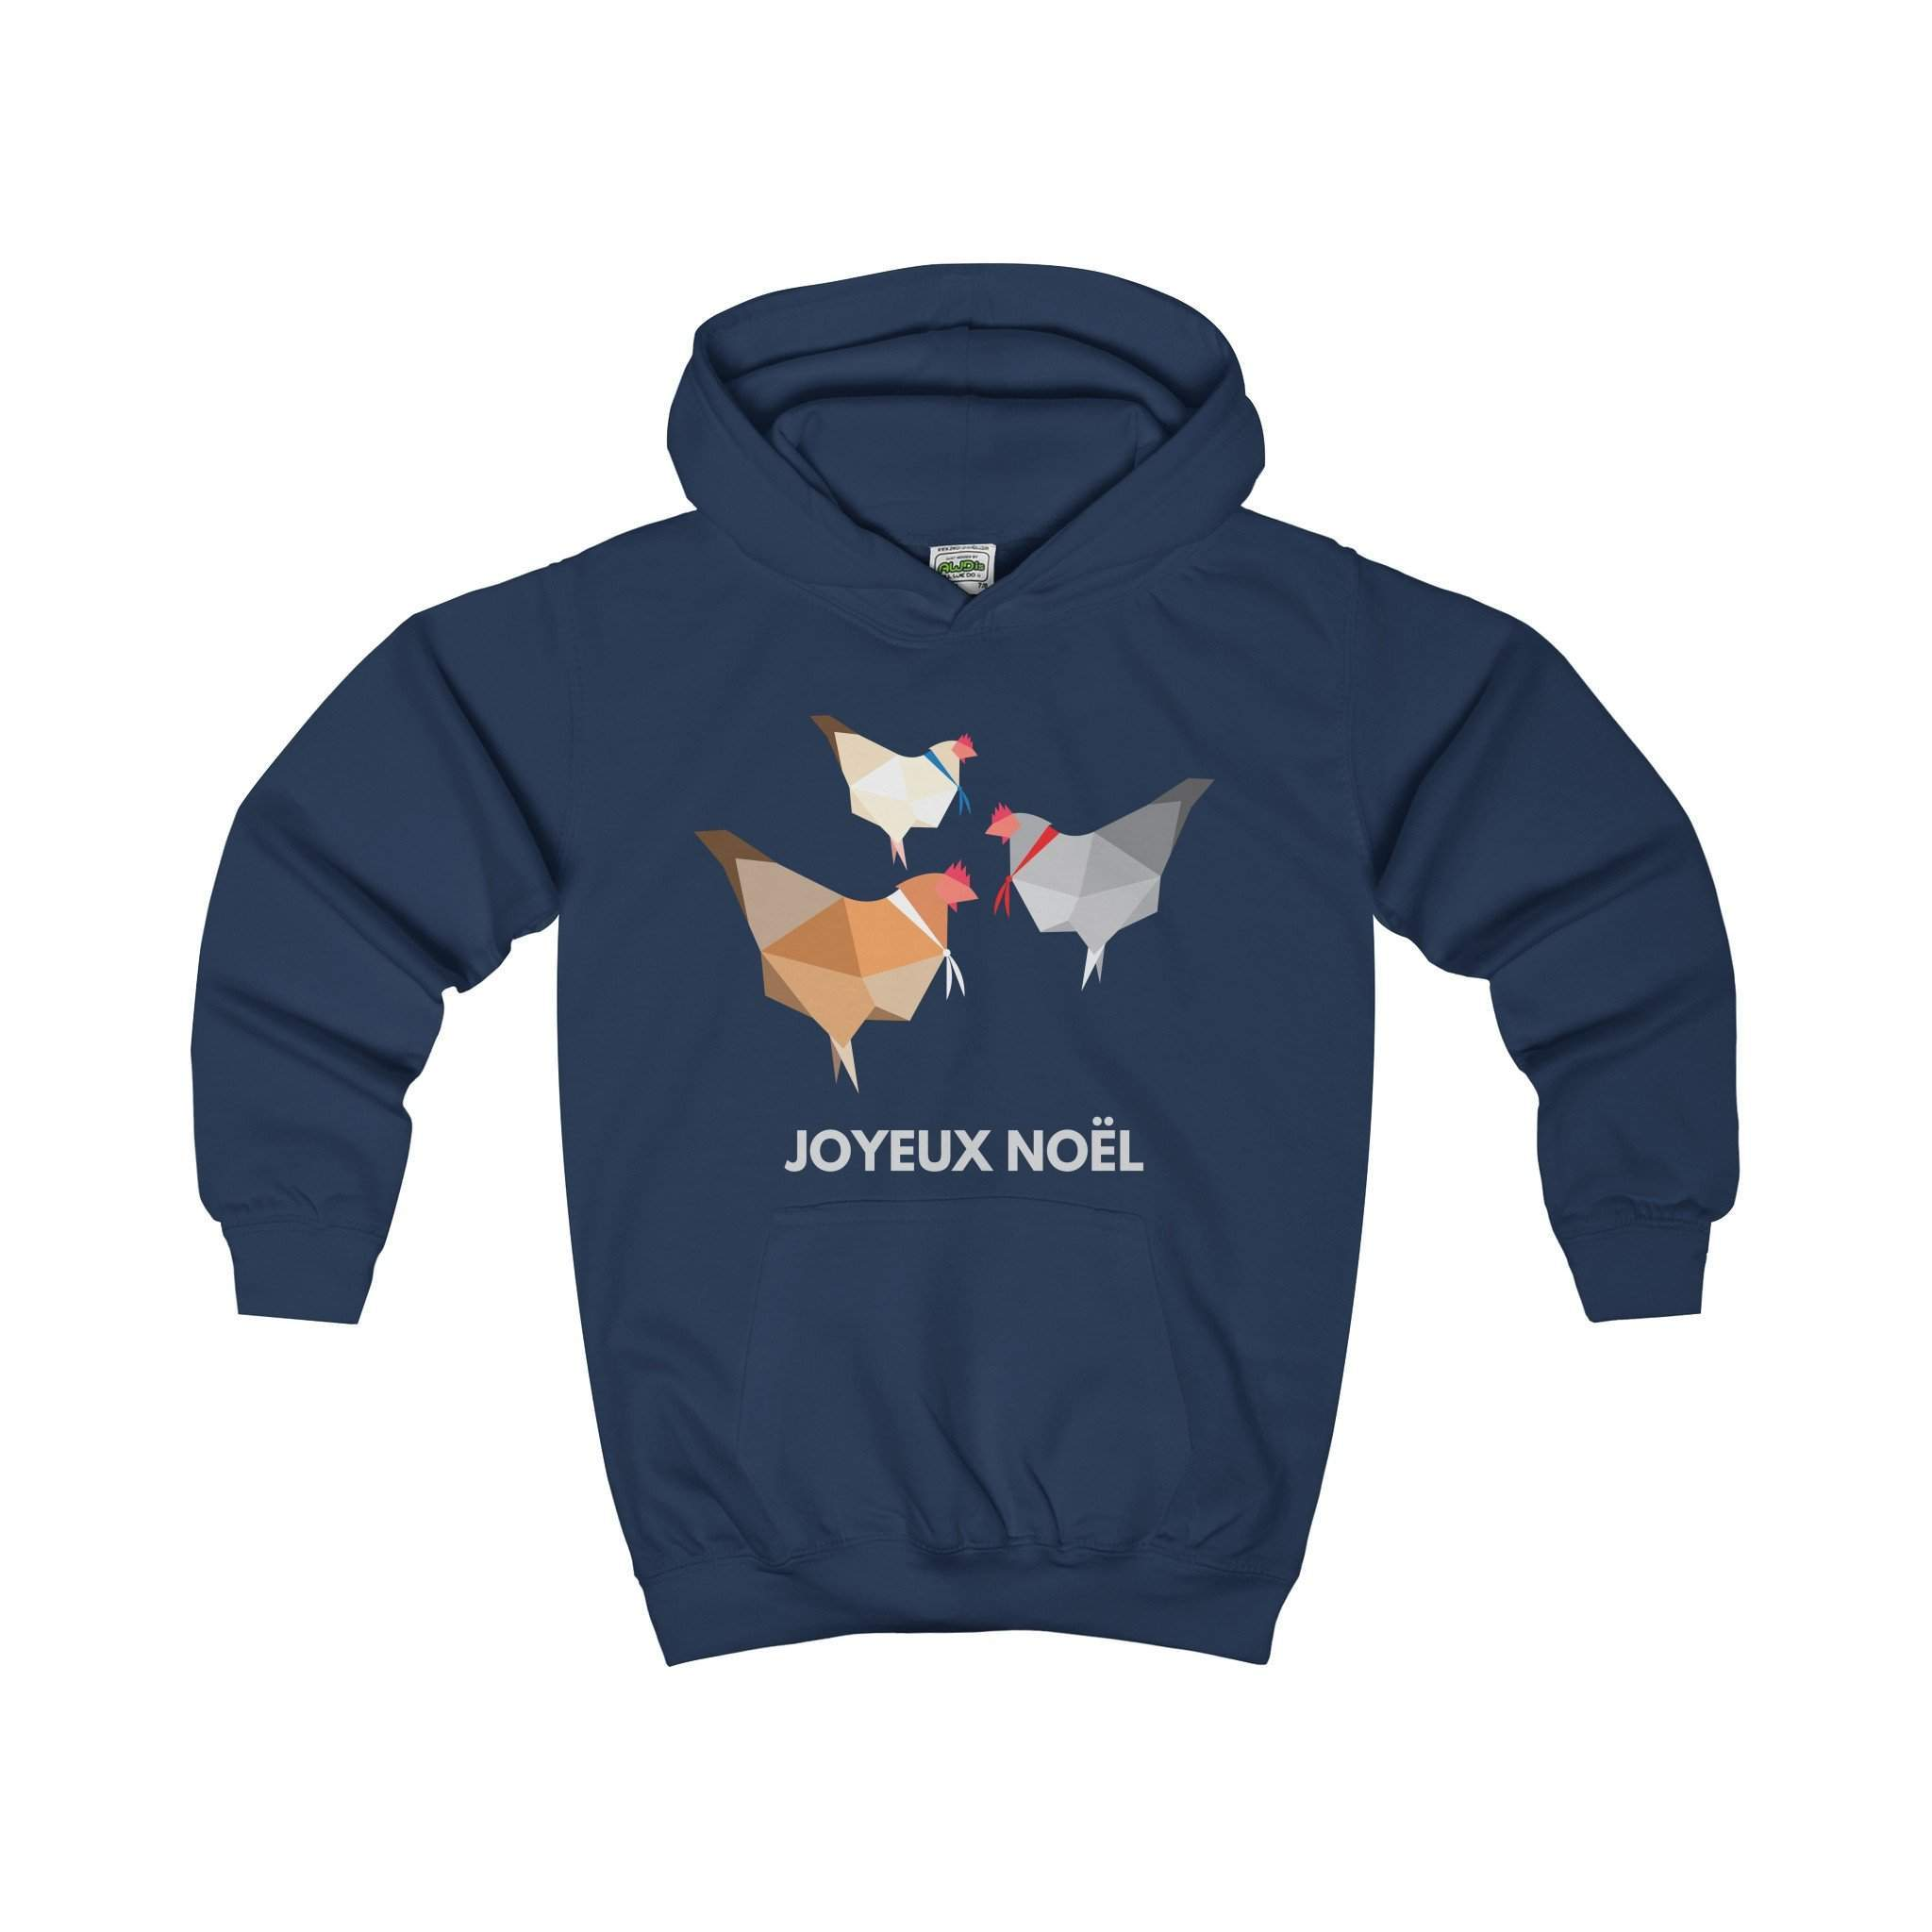 Three French Hens Kids' Christmas Hoodie-Kids clothes-Jolly Christmas Jumper